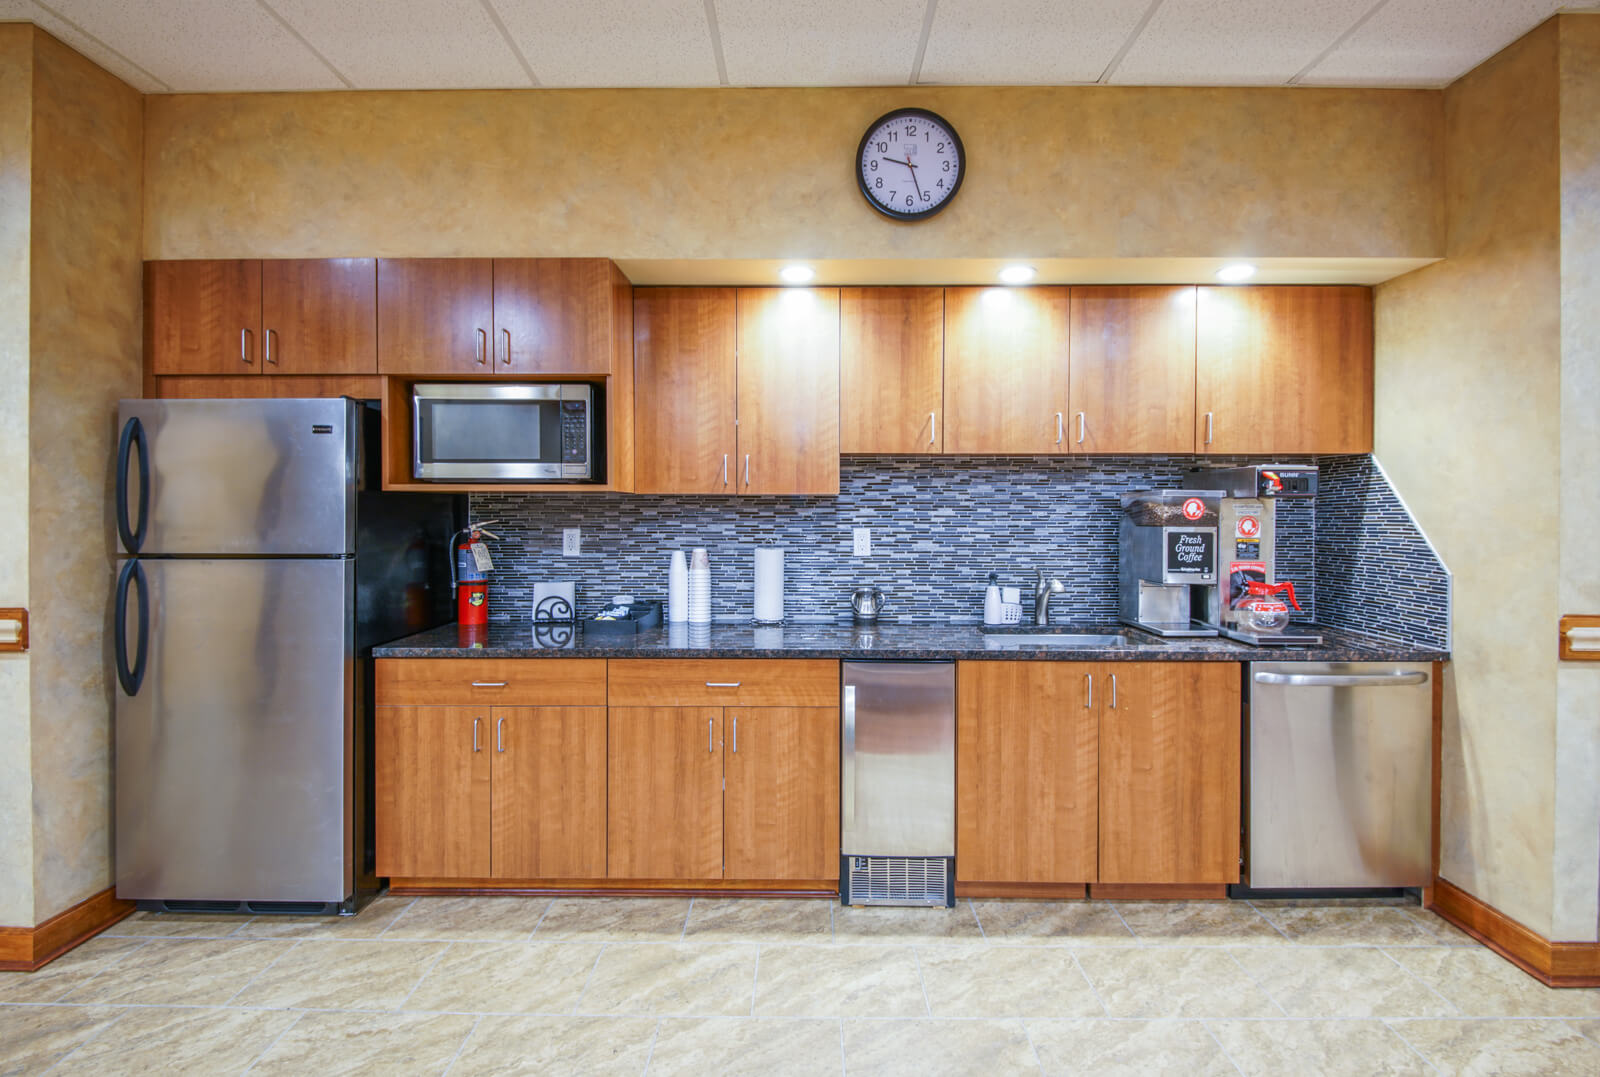 Full kitchen office amenities